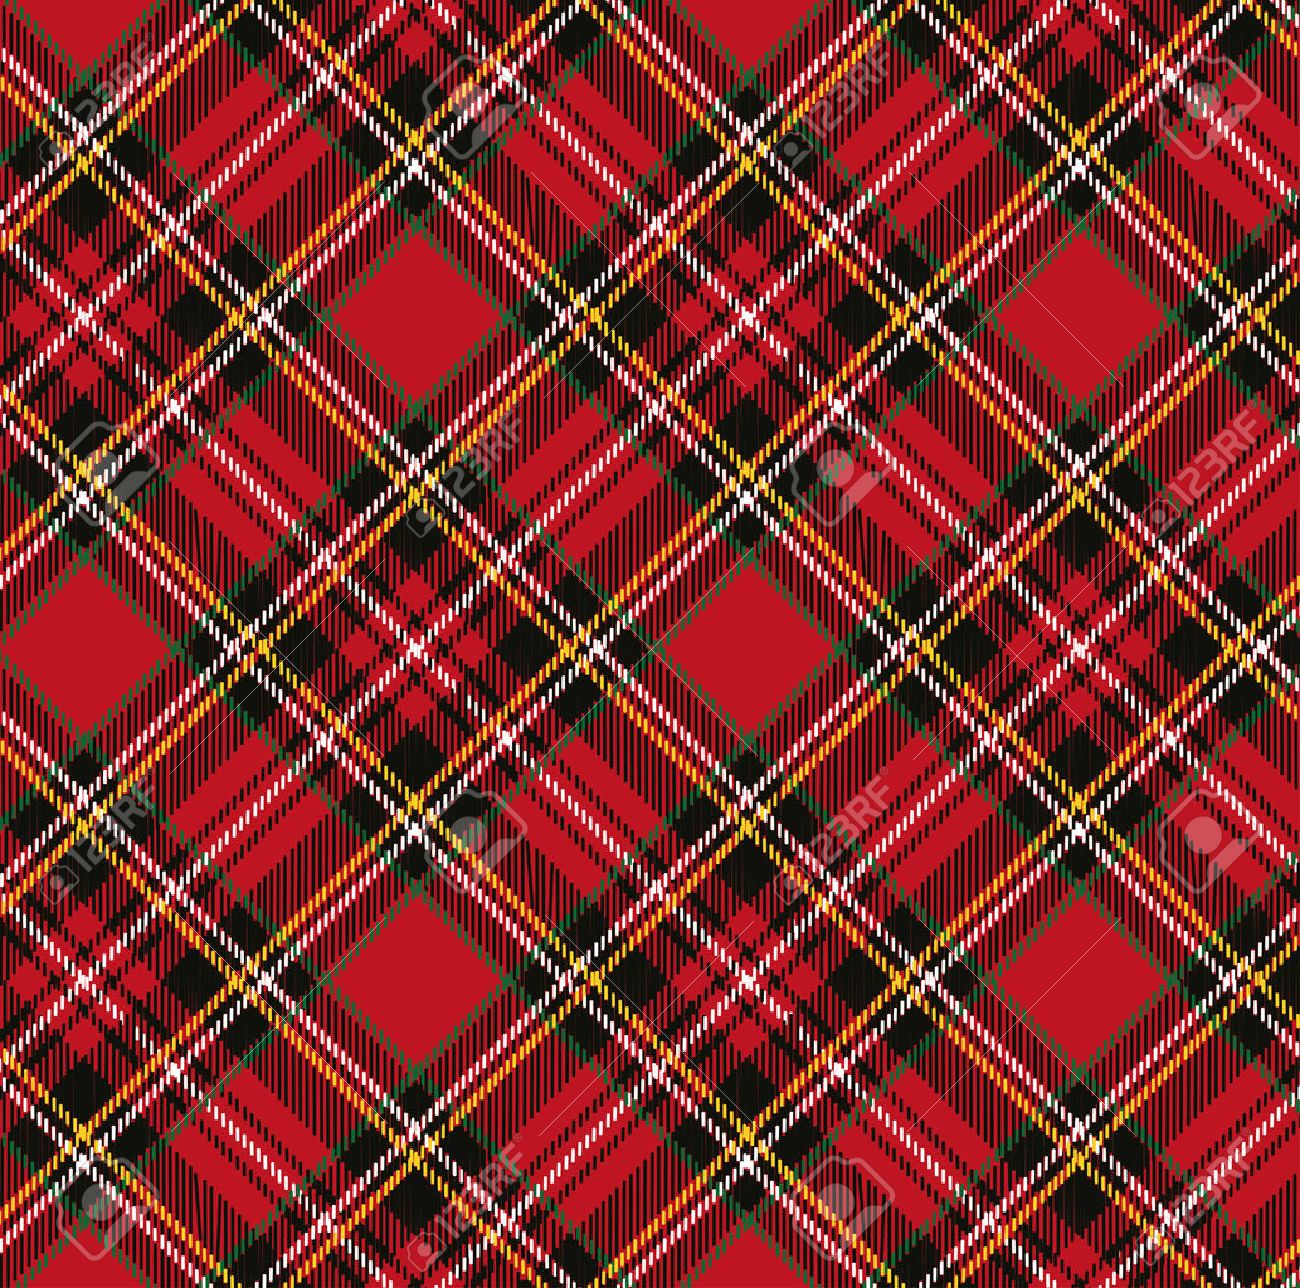 Tartan Plaid tartan, plaid pattern background.folk retro style.fashion